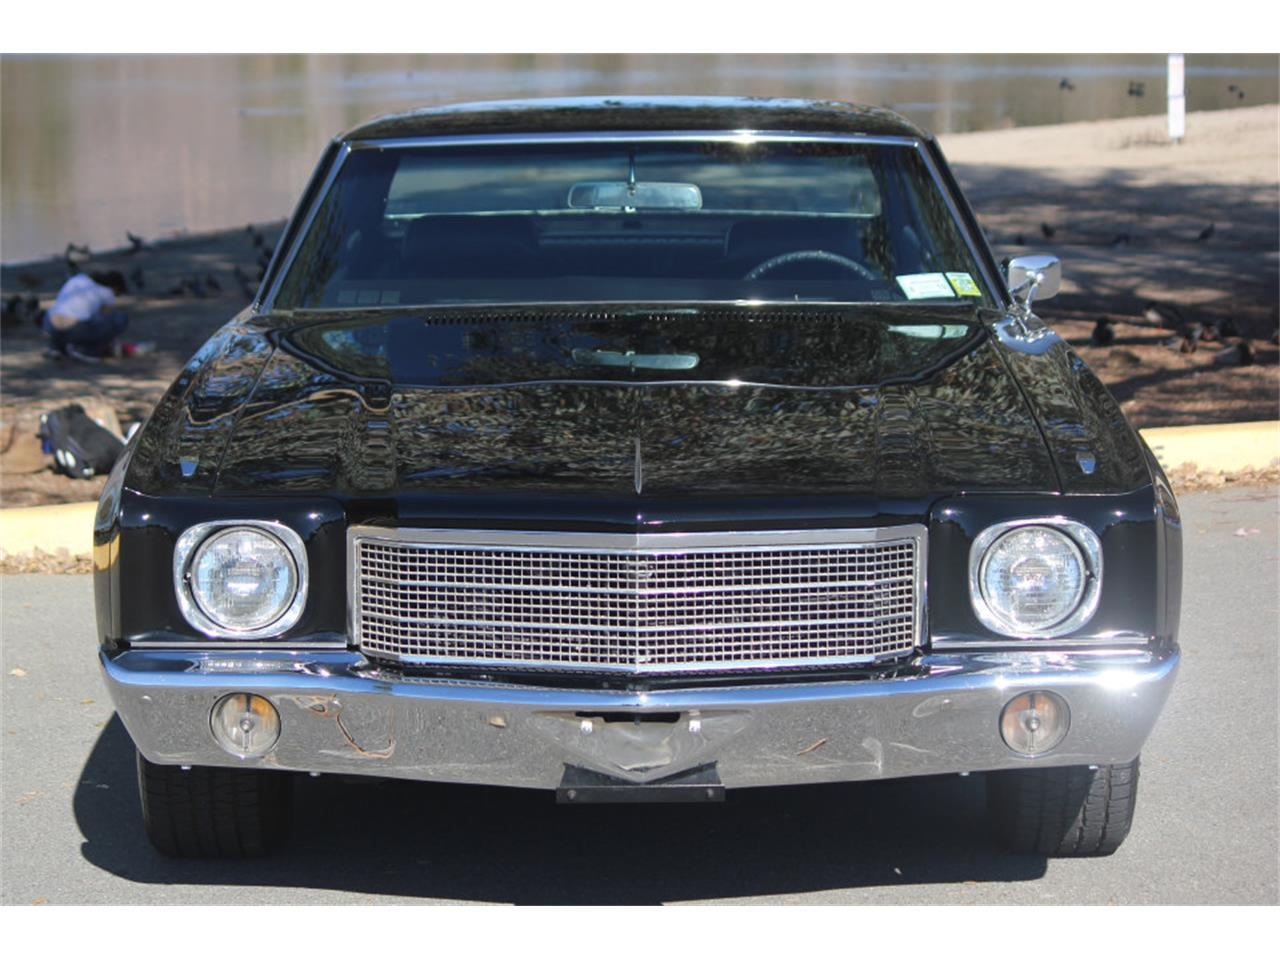 Large Picture of '70 Chevrolet Monte Carlo located in San Diego CA - California - PWFG